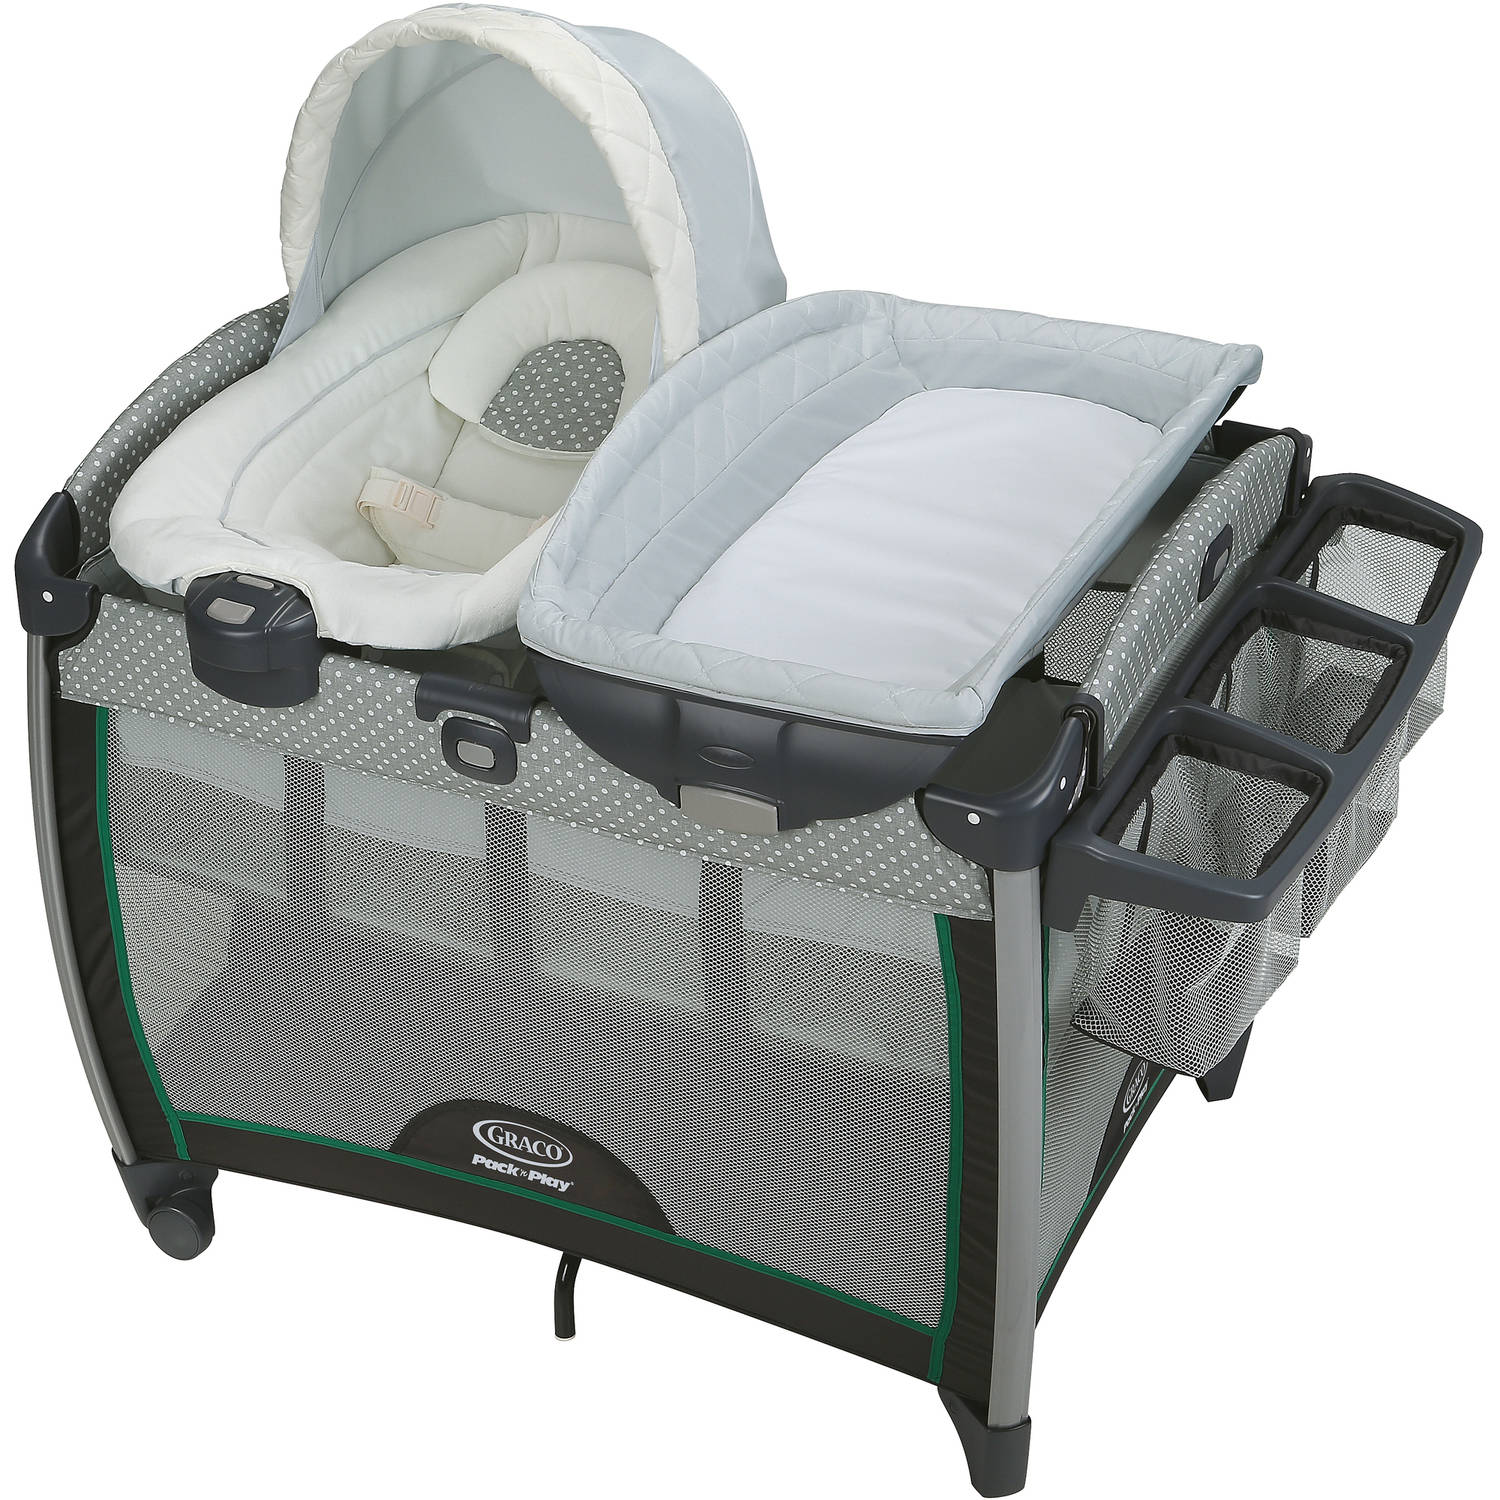 Graco Pack 'n Play Quick Connect Portable Bouncer with Bassinet, Albie by Graco